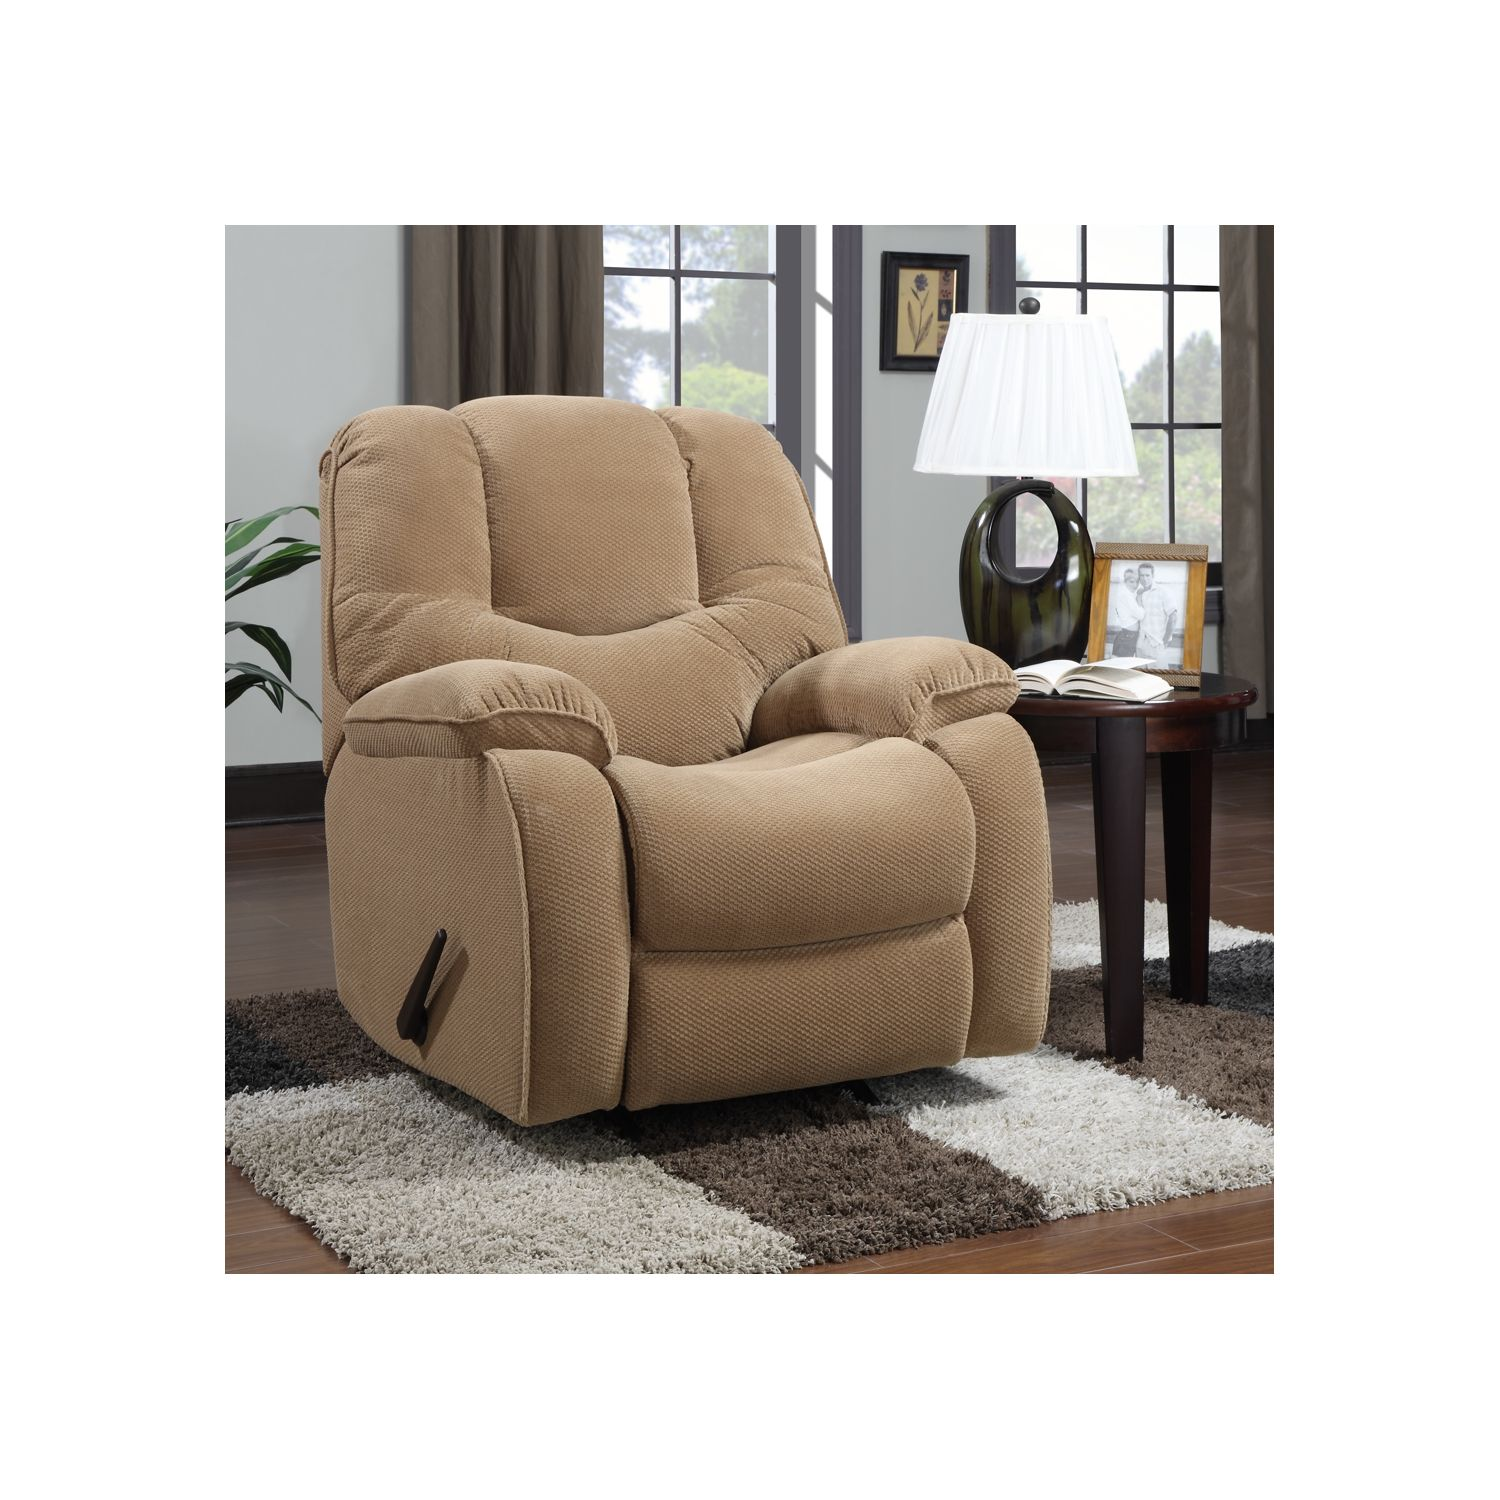 Rockford Rocker Recliner Full padded chaise at Sears.com